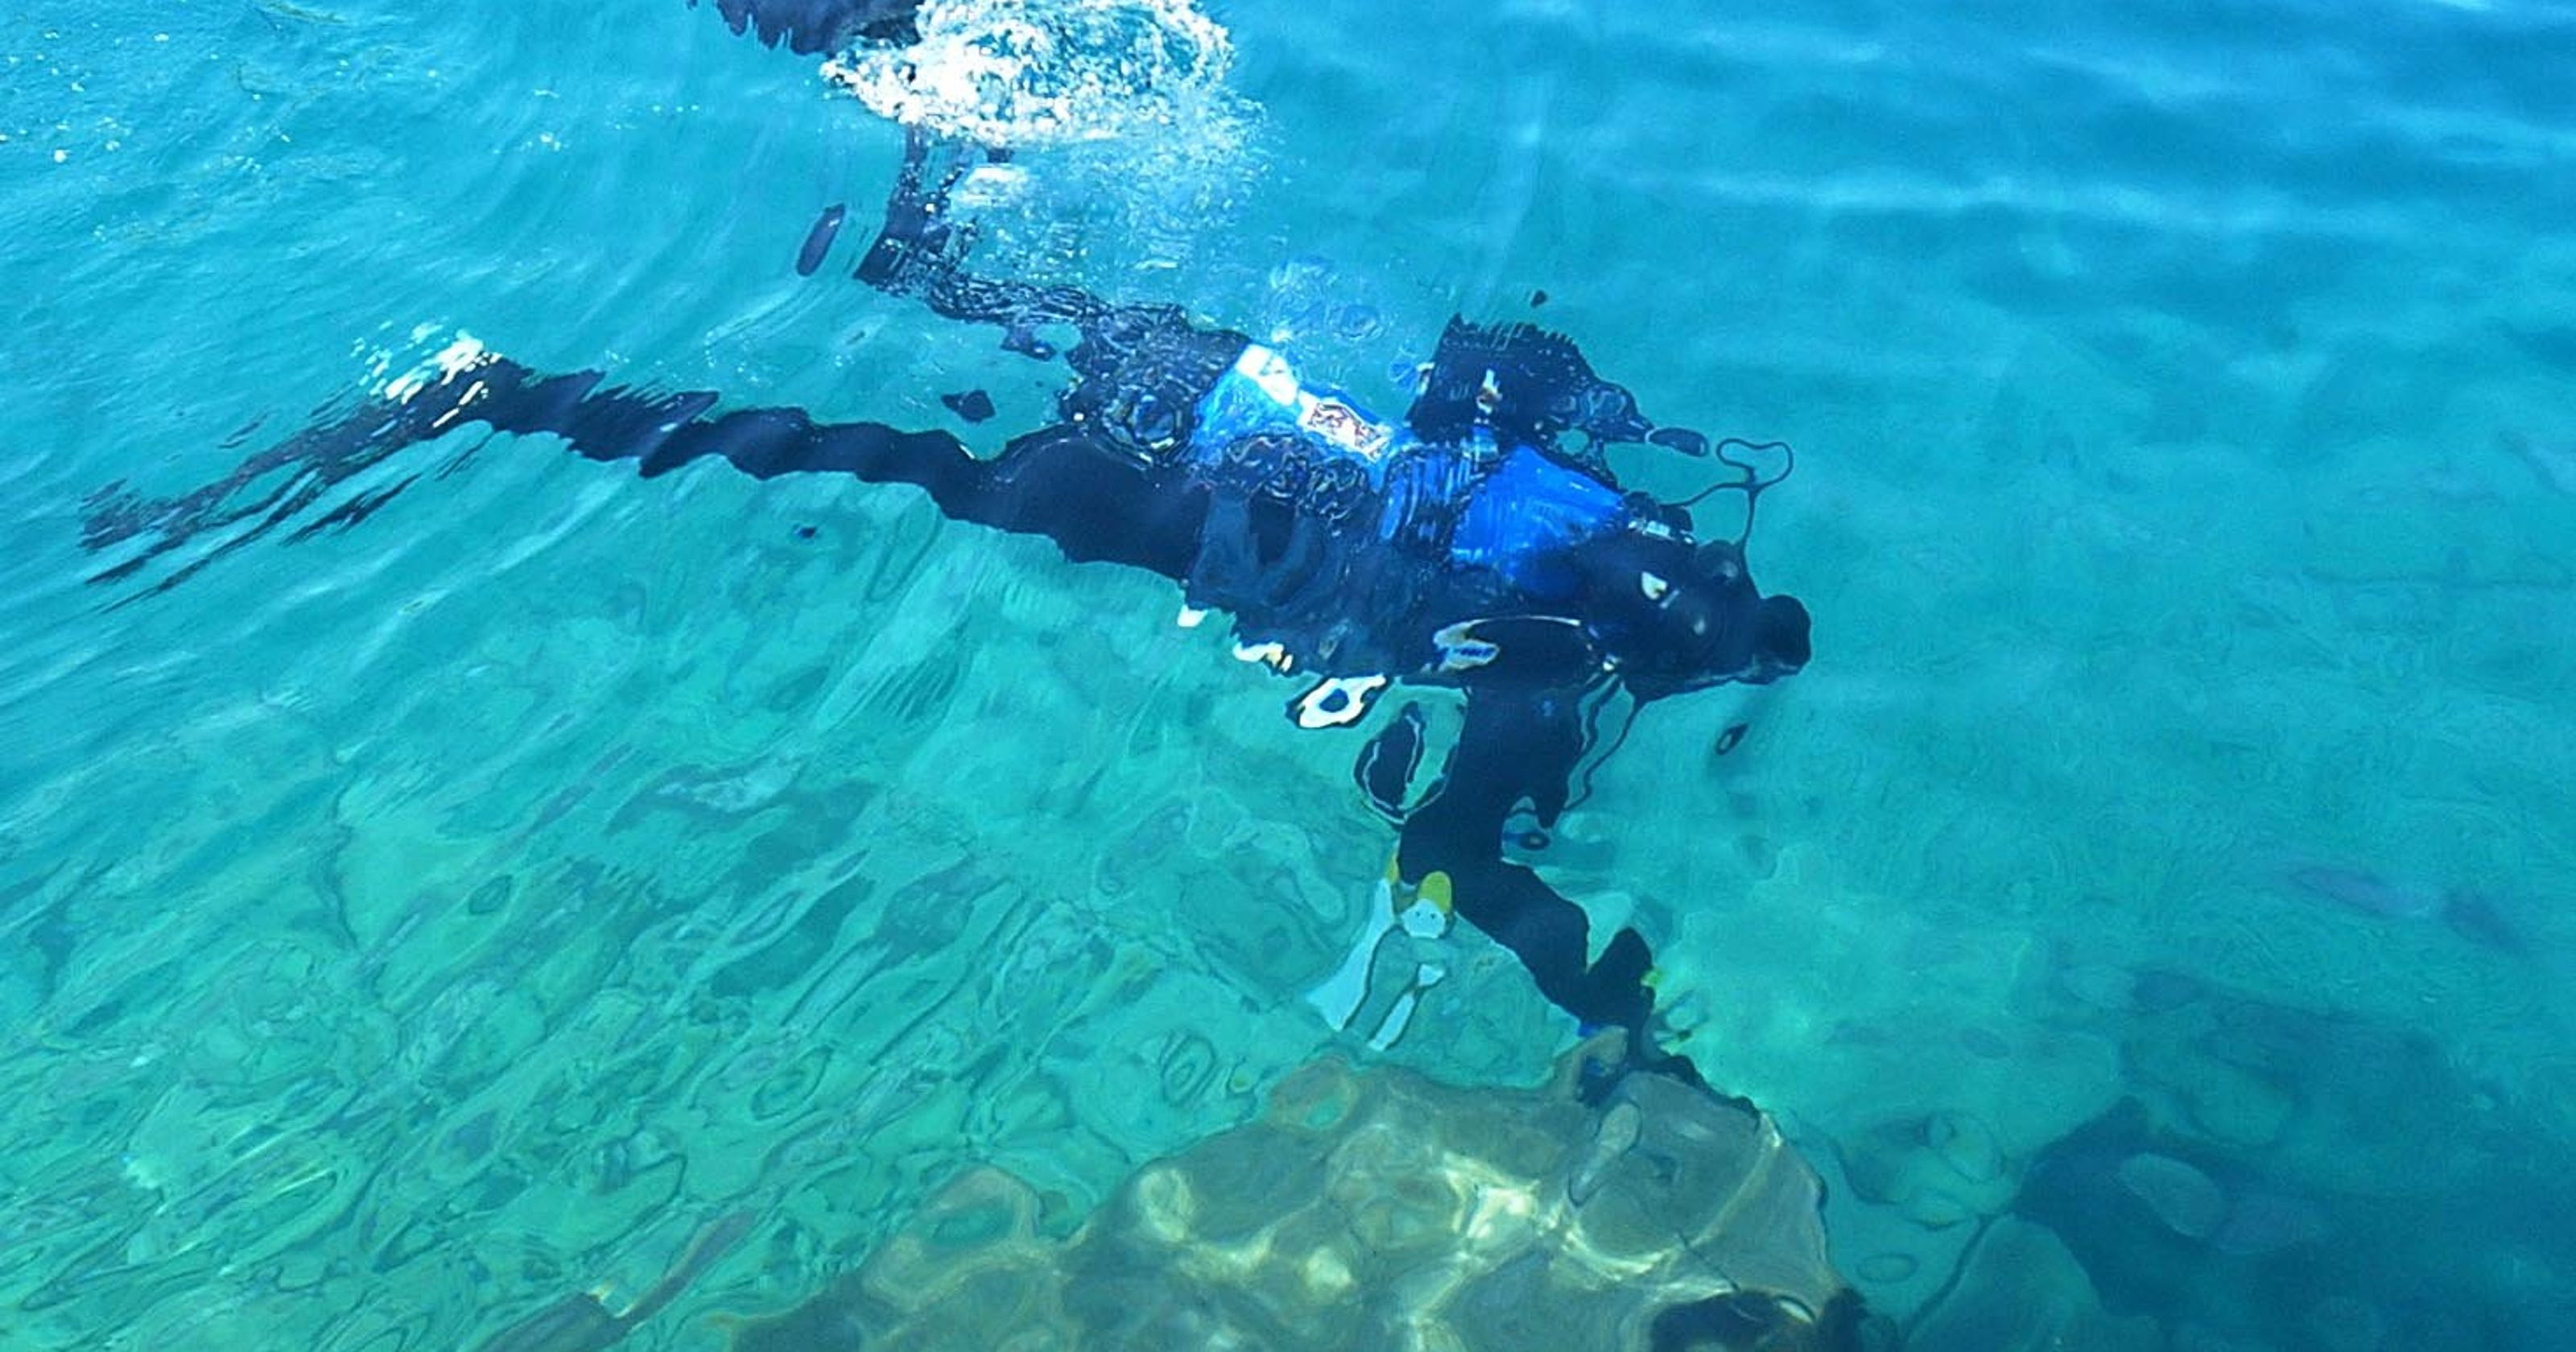 Scuba divers death caused by pre-existing heart condition